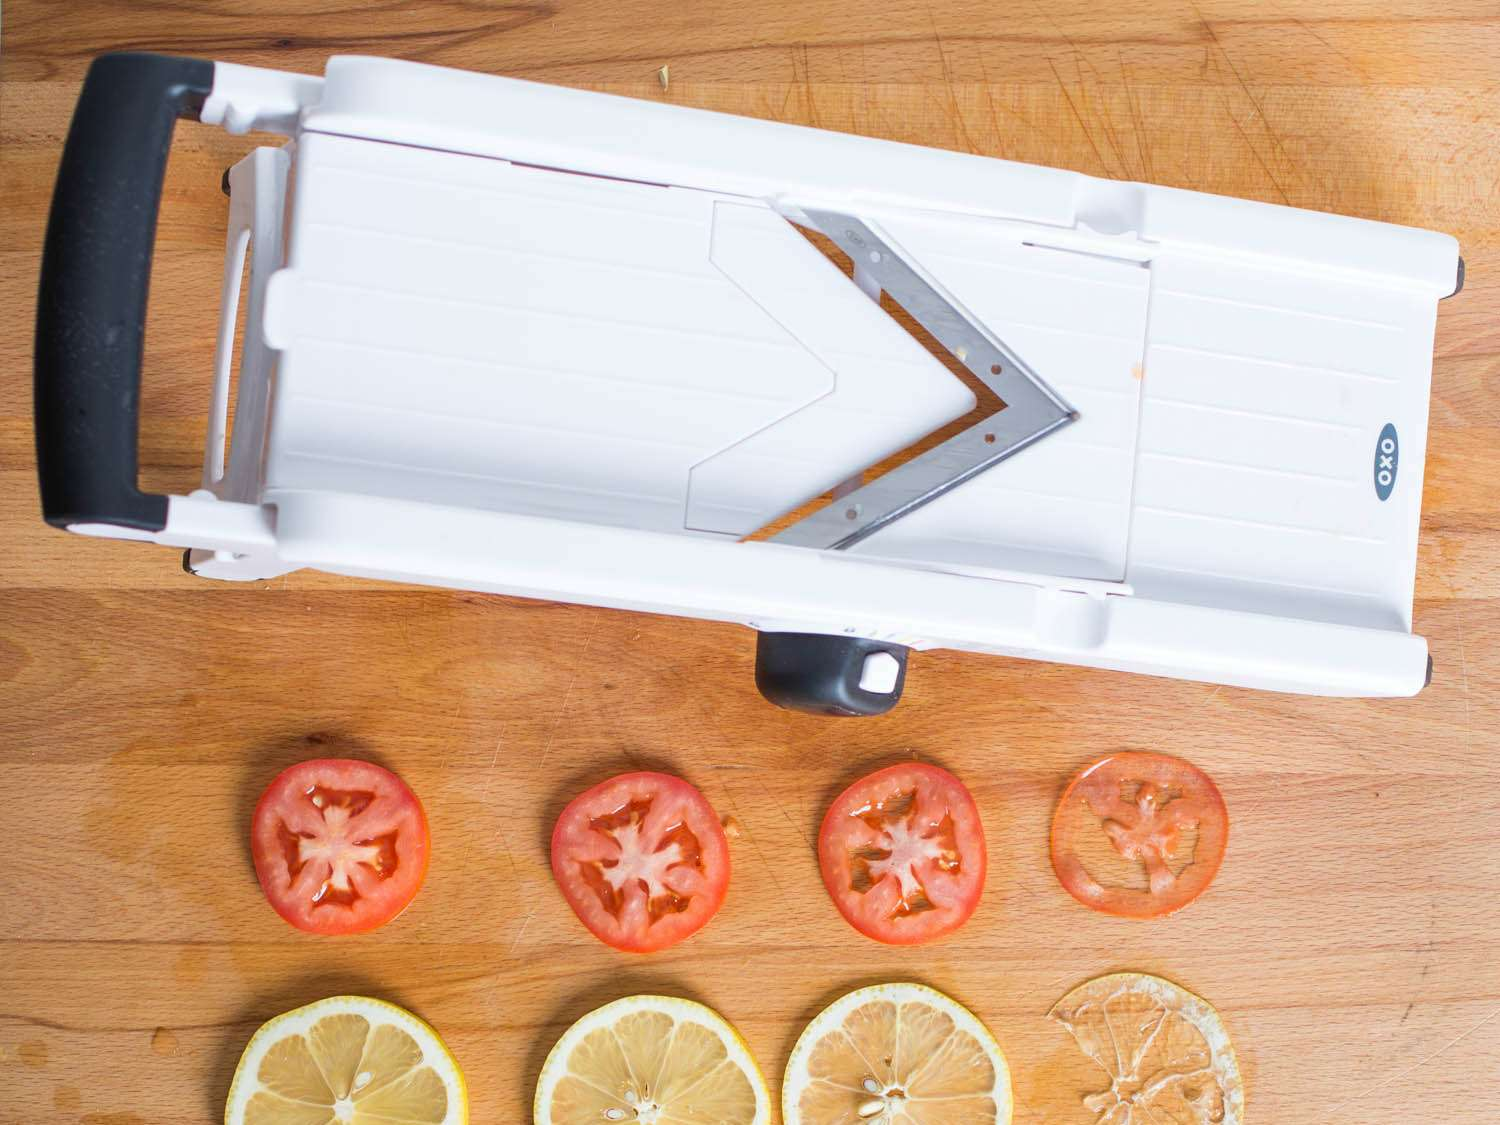 A mandoline v-slicer on a cutting board with sliced tomatoes and lemons.